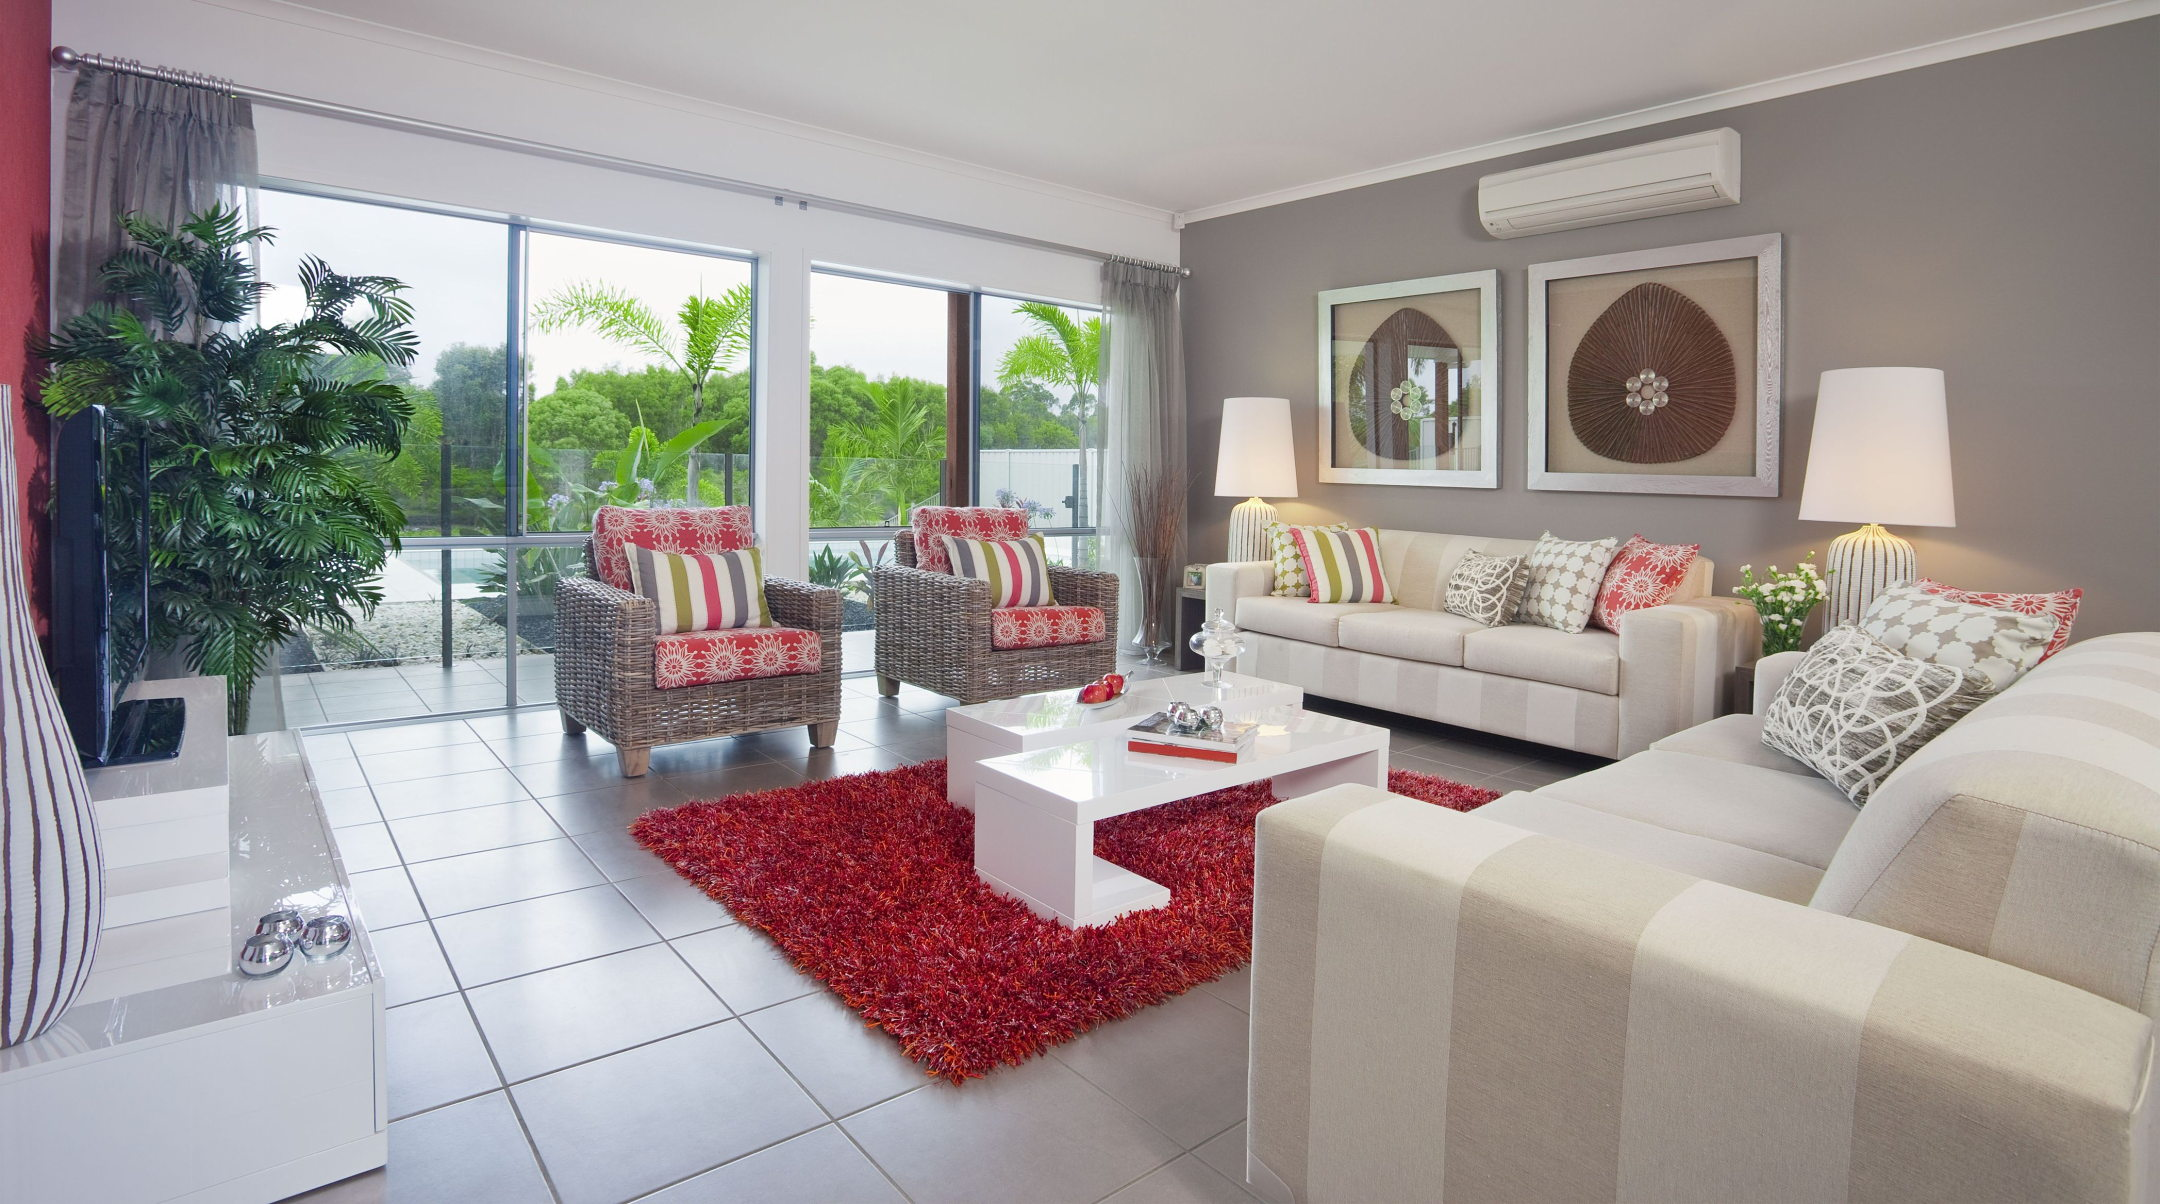 Living room ideas red and grey modern house for Grey and red living room ideas